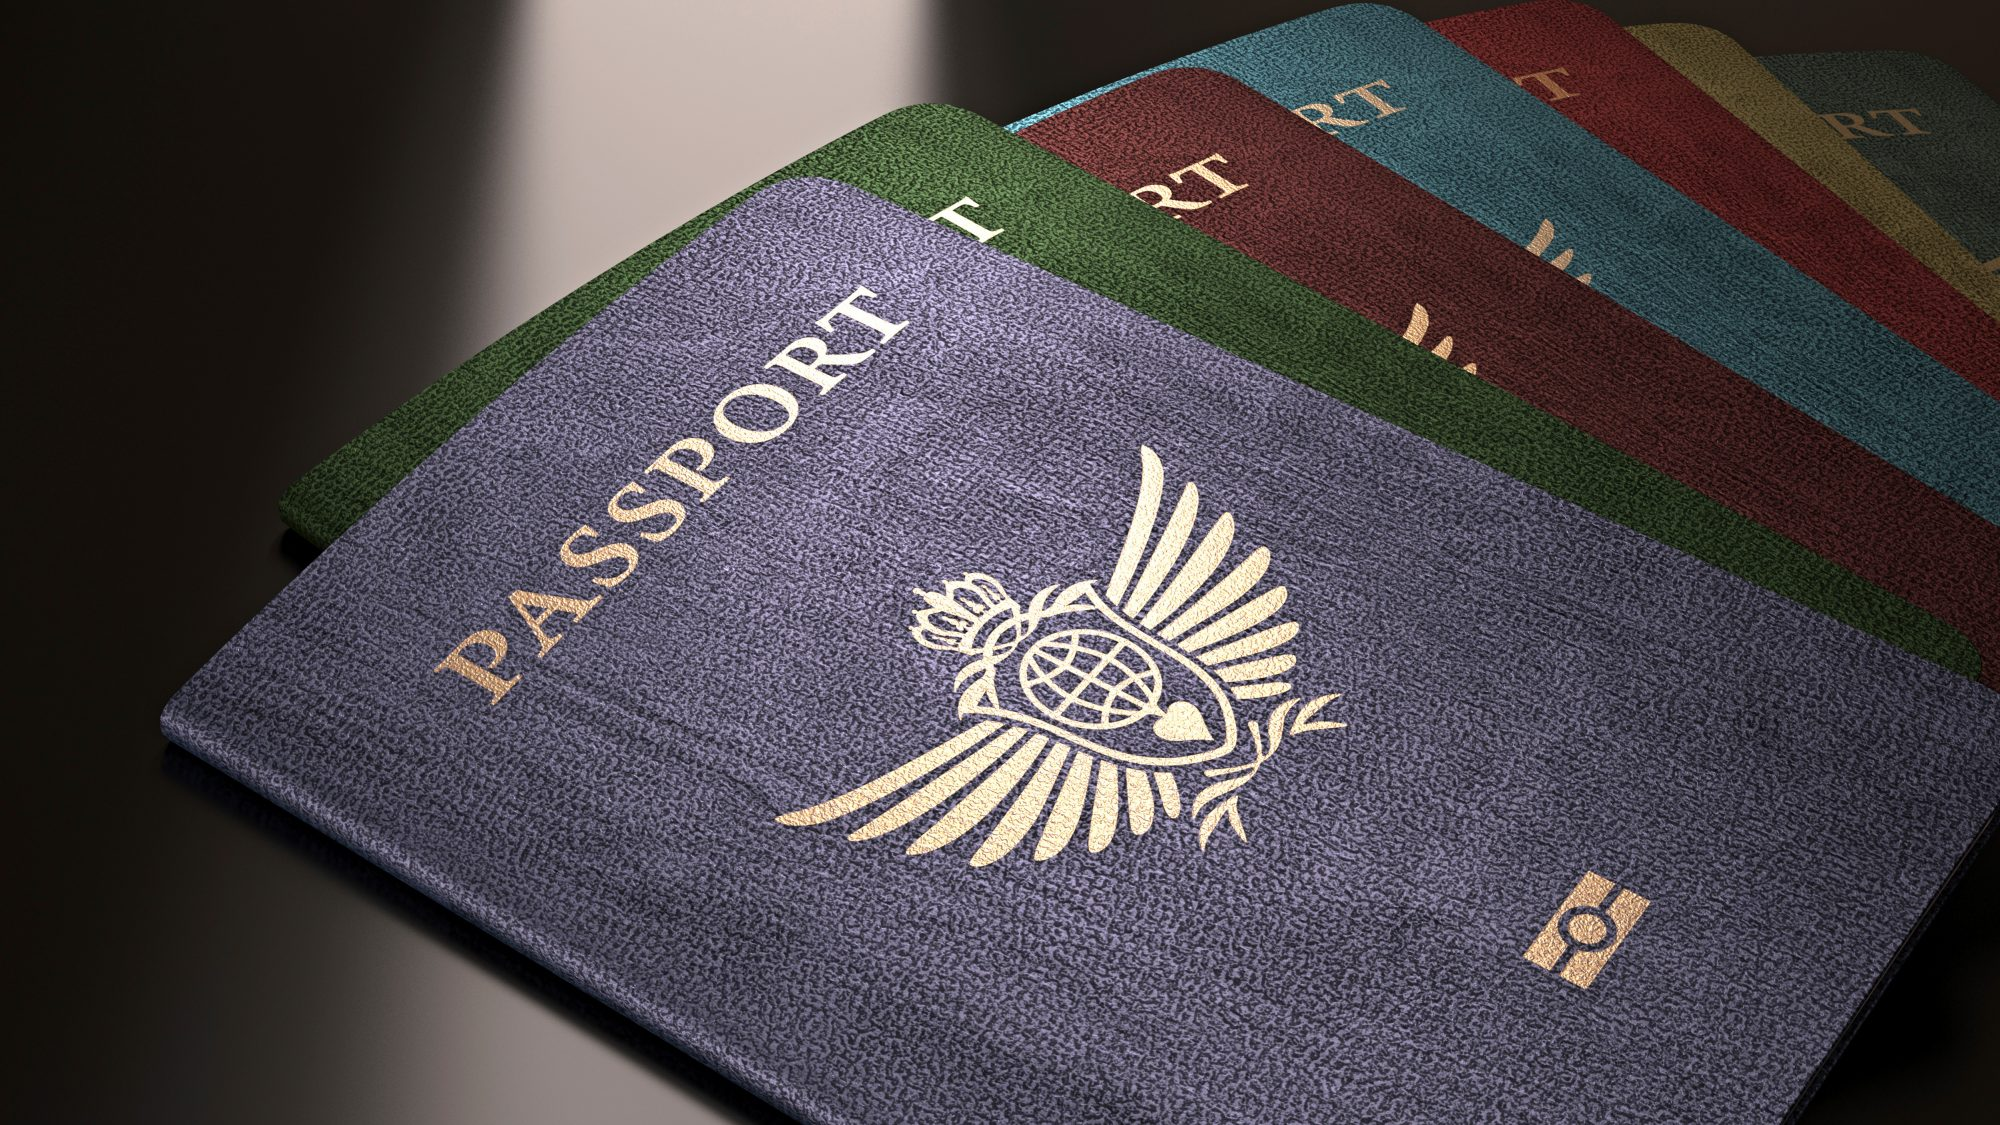 Passport-free Travel in Europe Could Soon Be a Thing of the Past